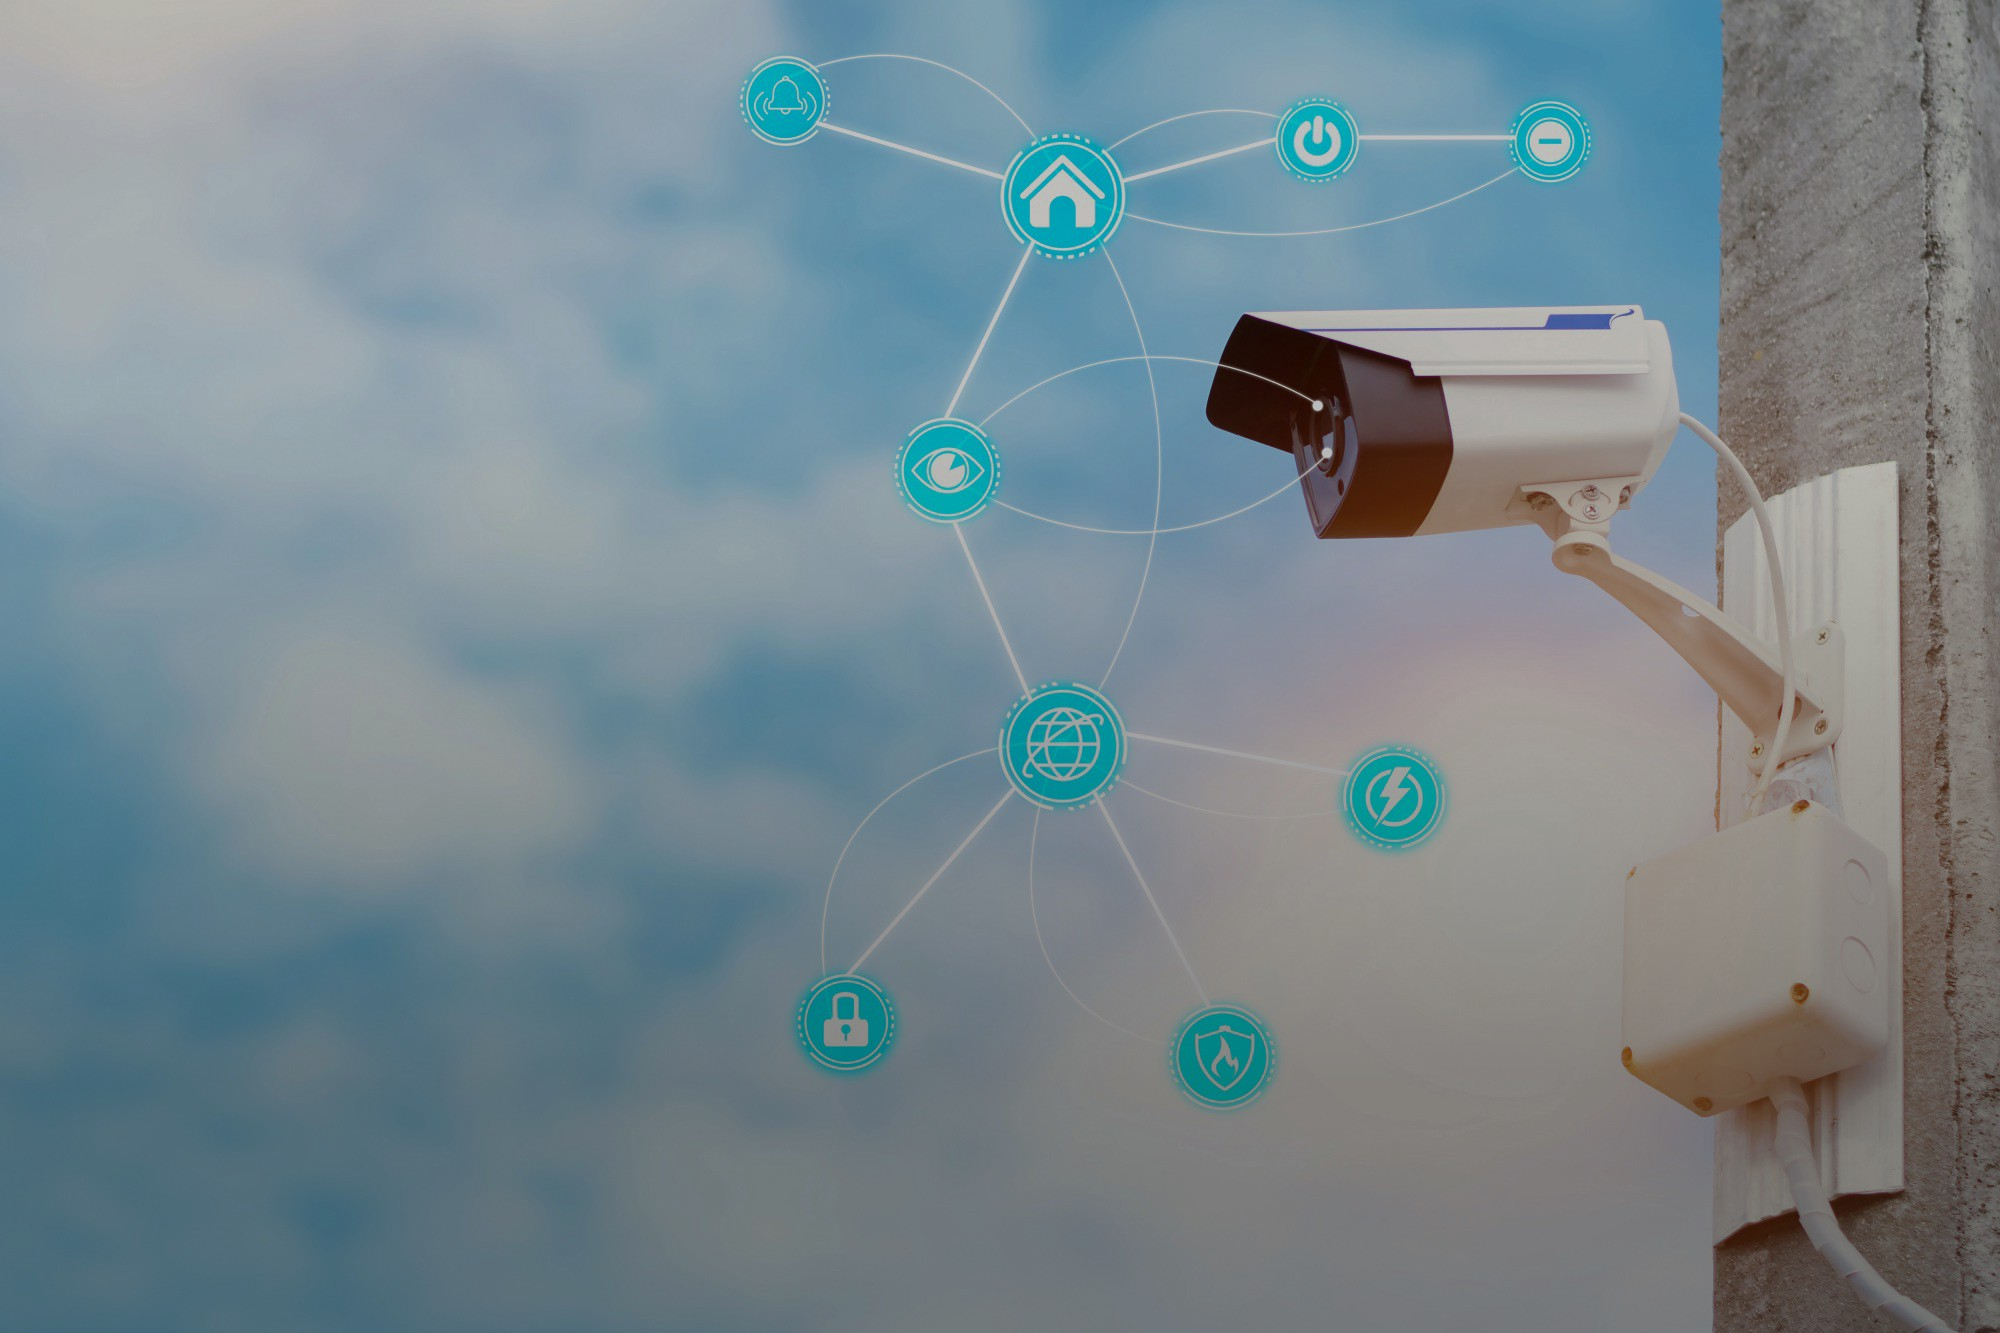 AI in Video Surveillance - adding 'Brains' to the 'Eyes'